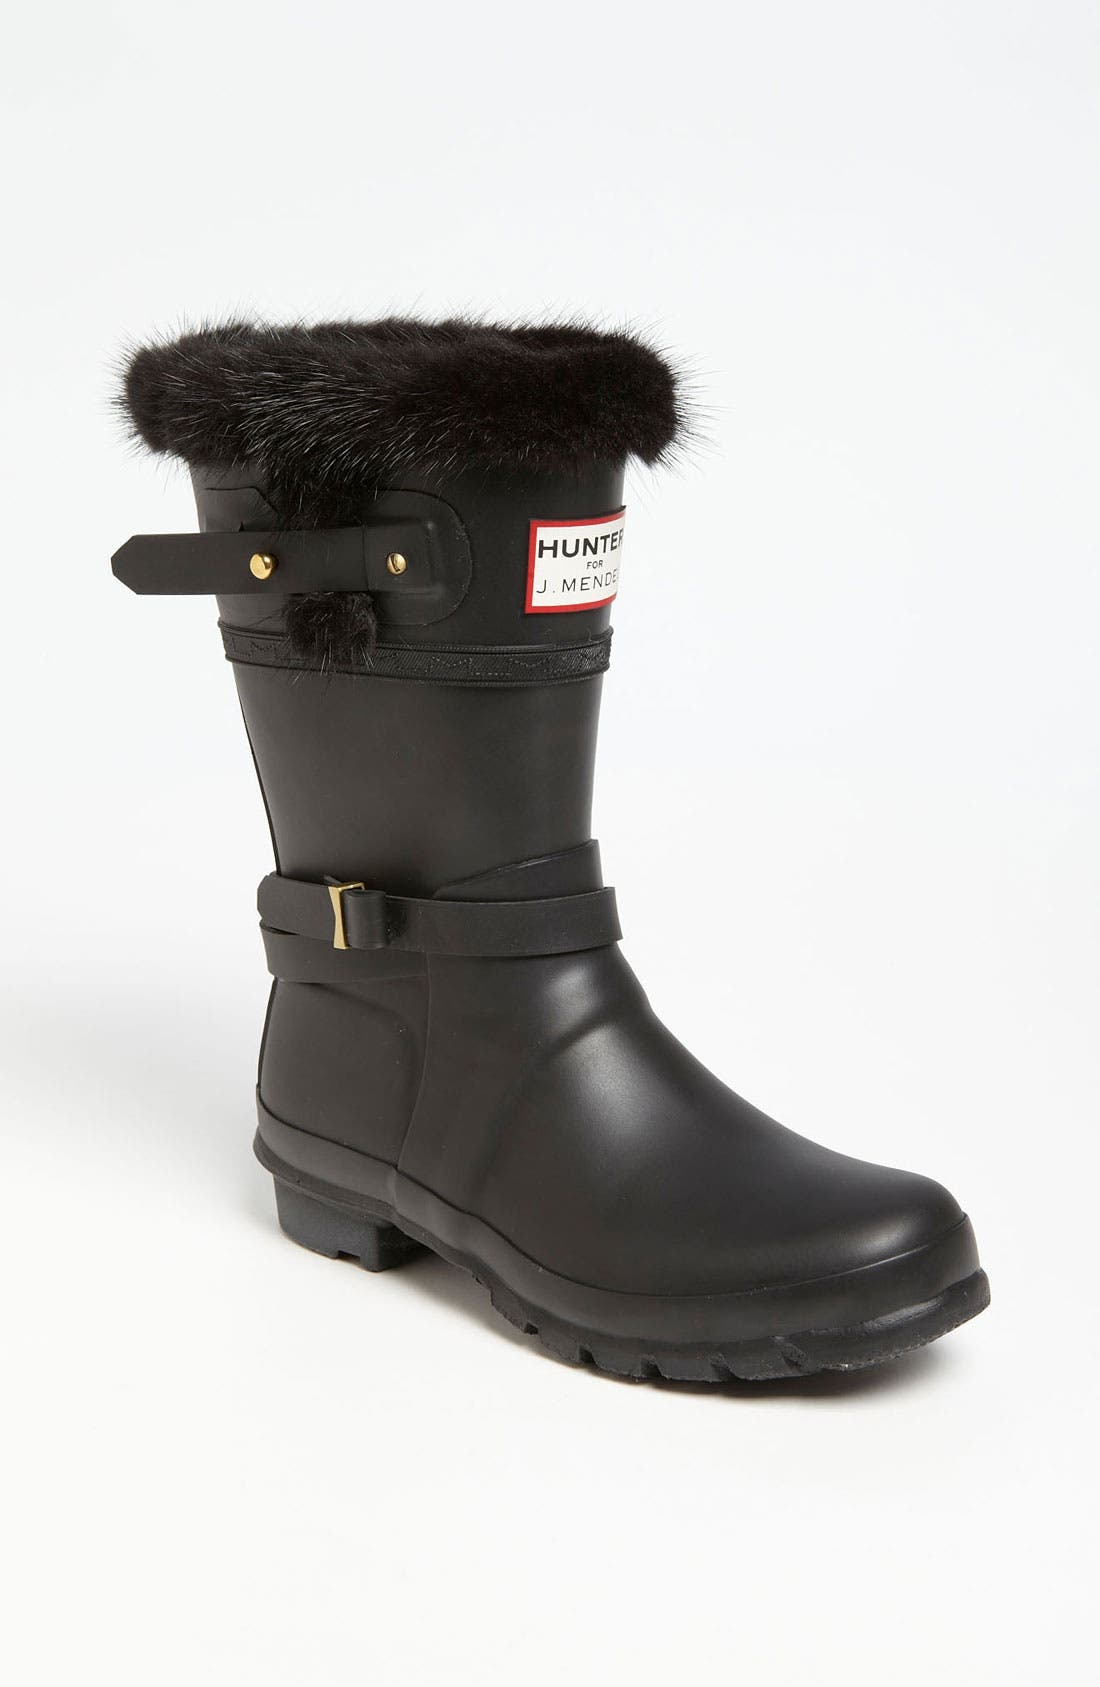 Main Image - Hunter for J. Mendel Genuine Fur Trim Boot (Women)